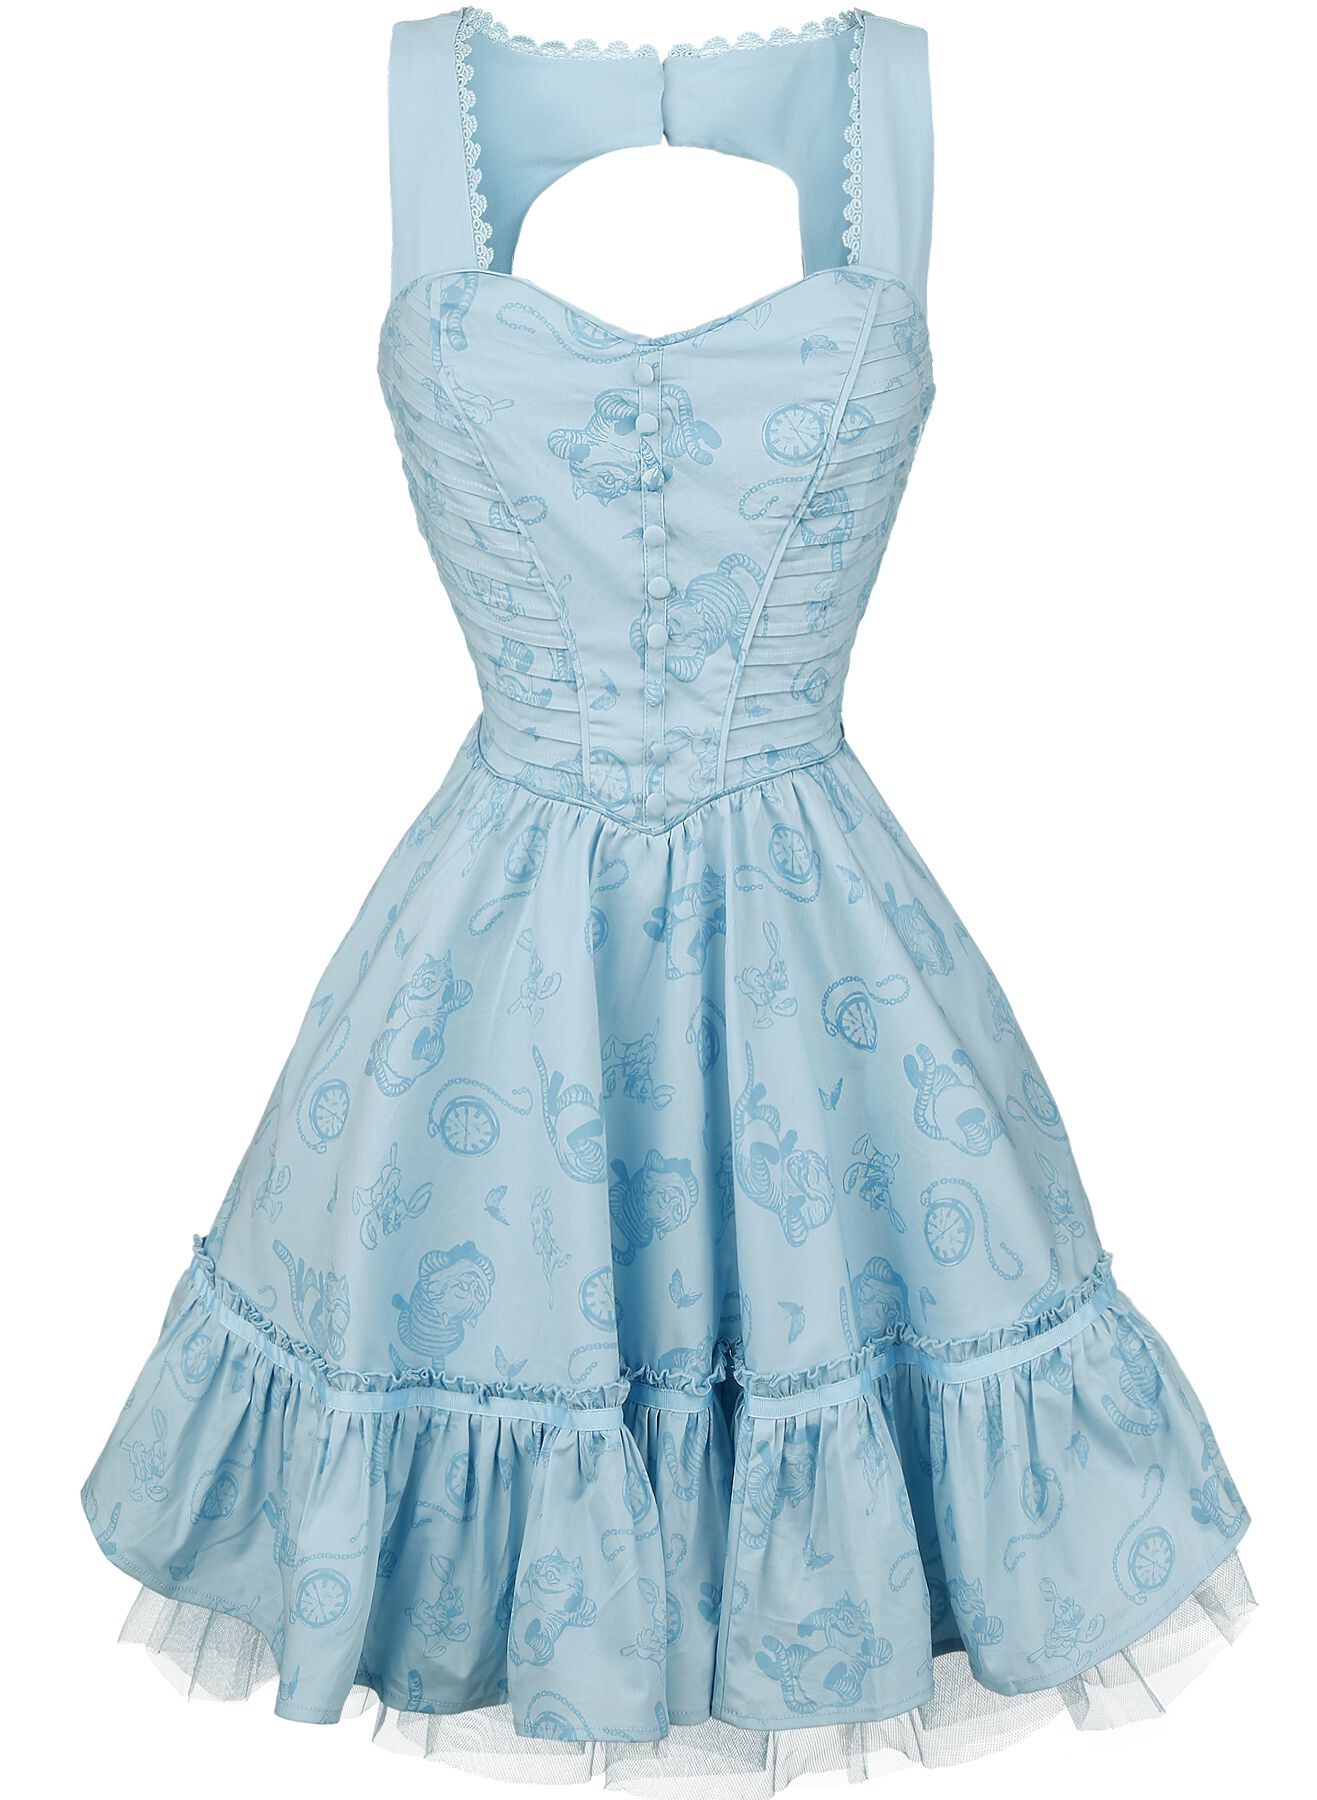 Image of   Alice i Eventyrland Through The Looking Glass - Alice Classic Dress Kjole blå